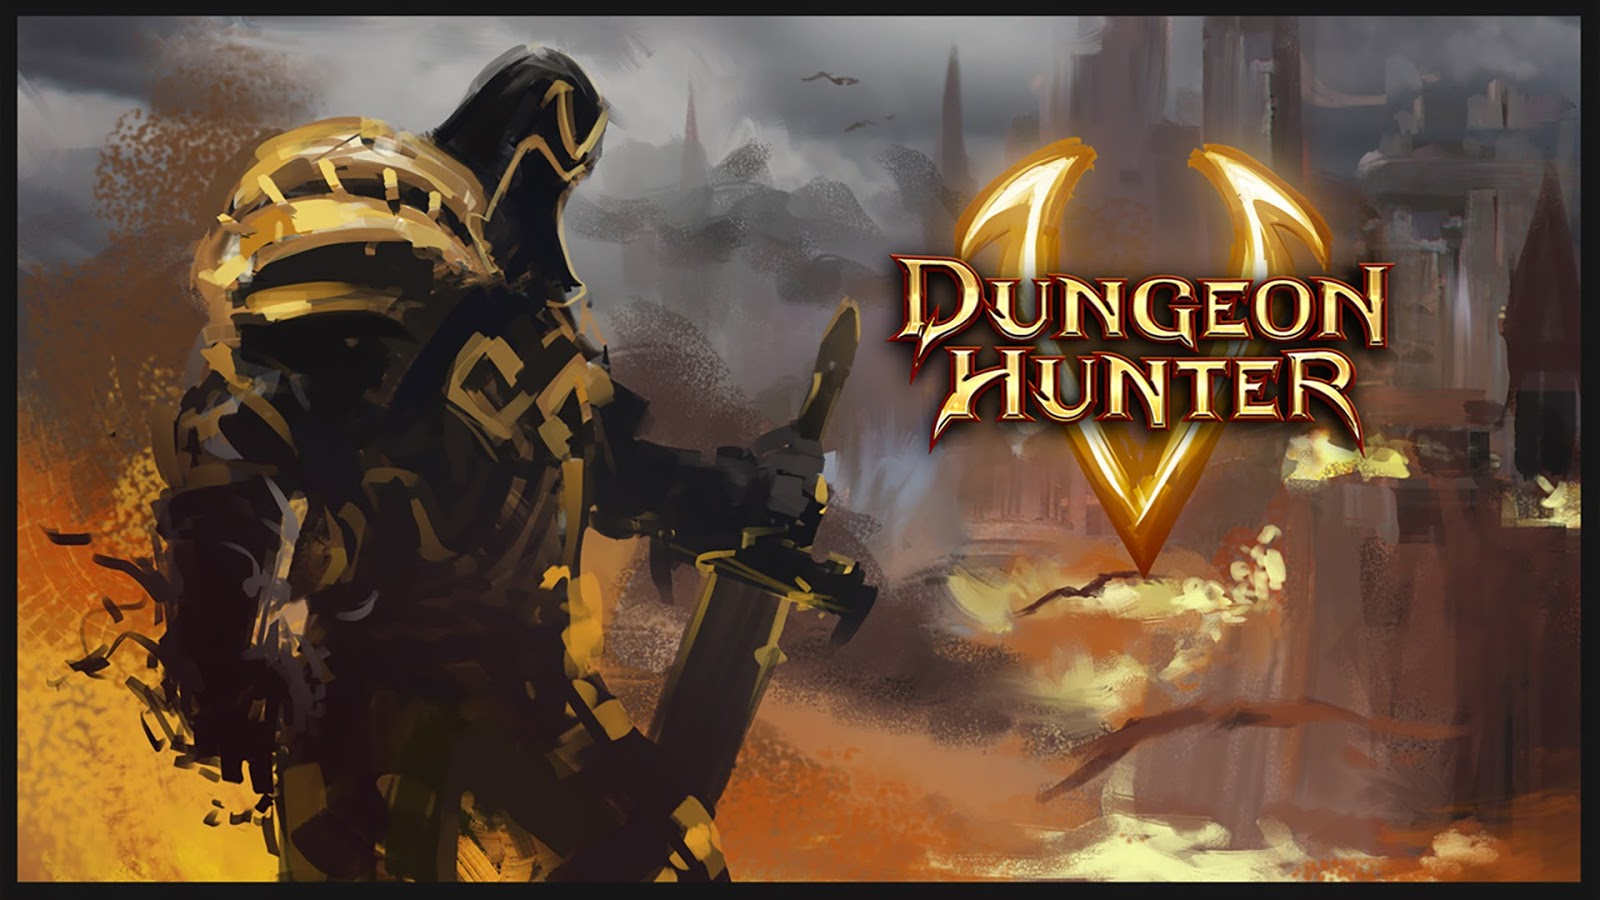 dungeon hunter 5 - Dungeon Hunter 5 Mod Apk indir Para Hileli v2.6.2b